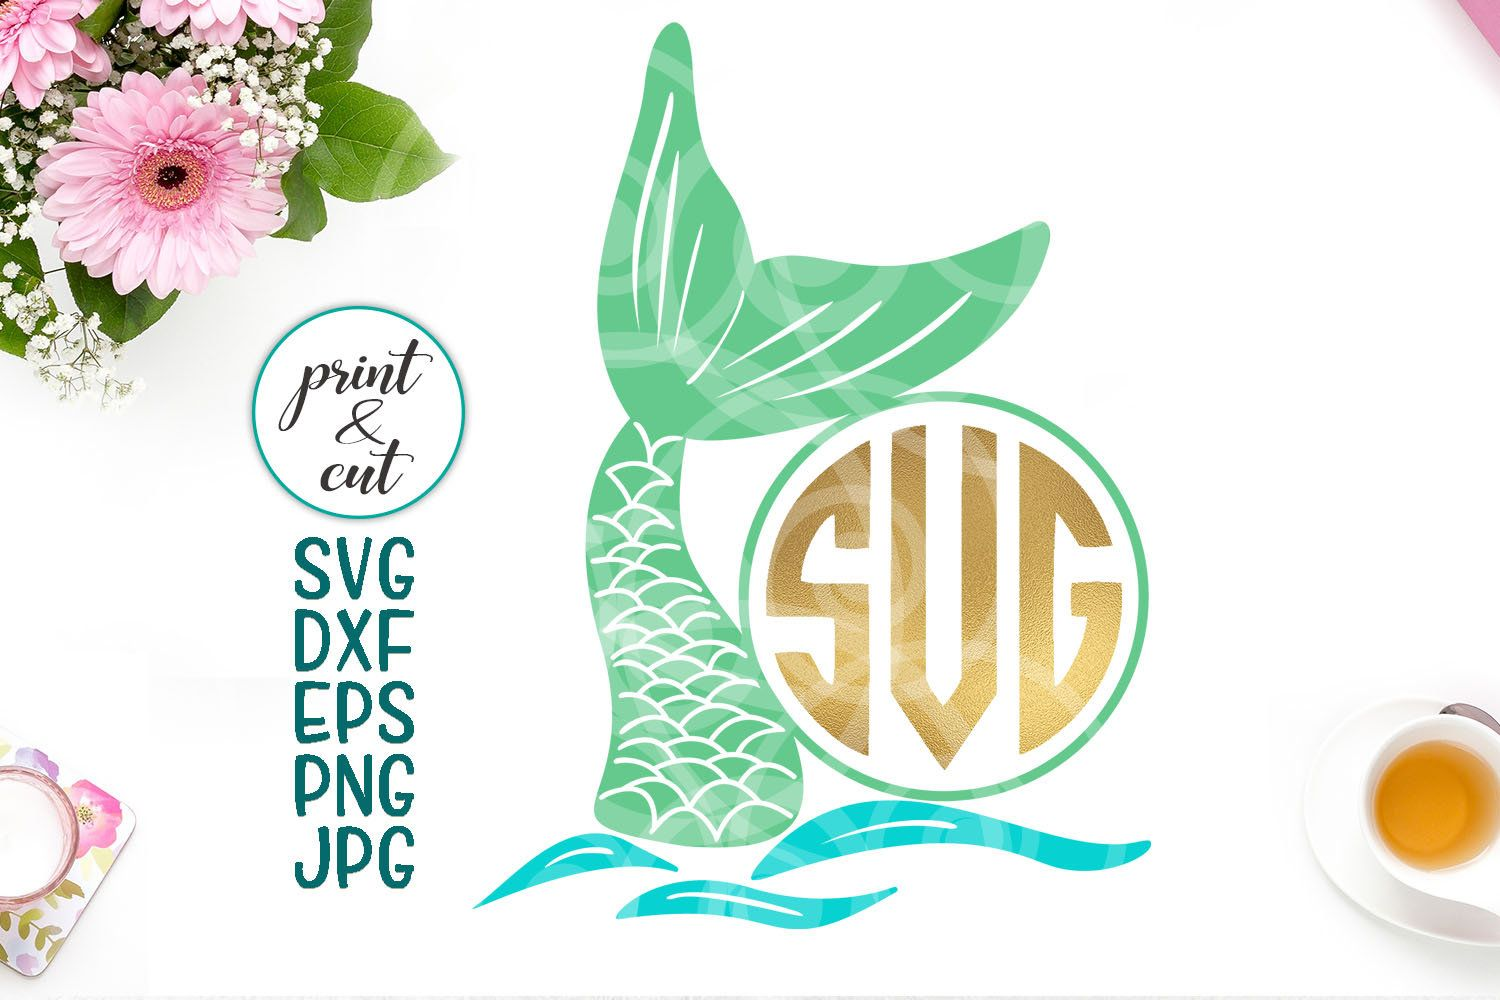 mermaid monogram svg, mermaid tail svg, mermaid svg